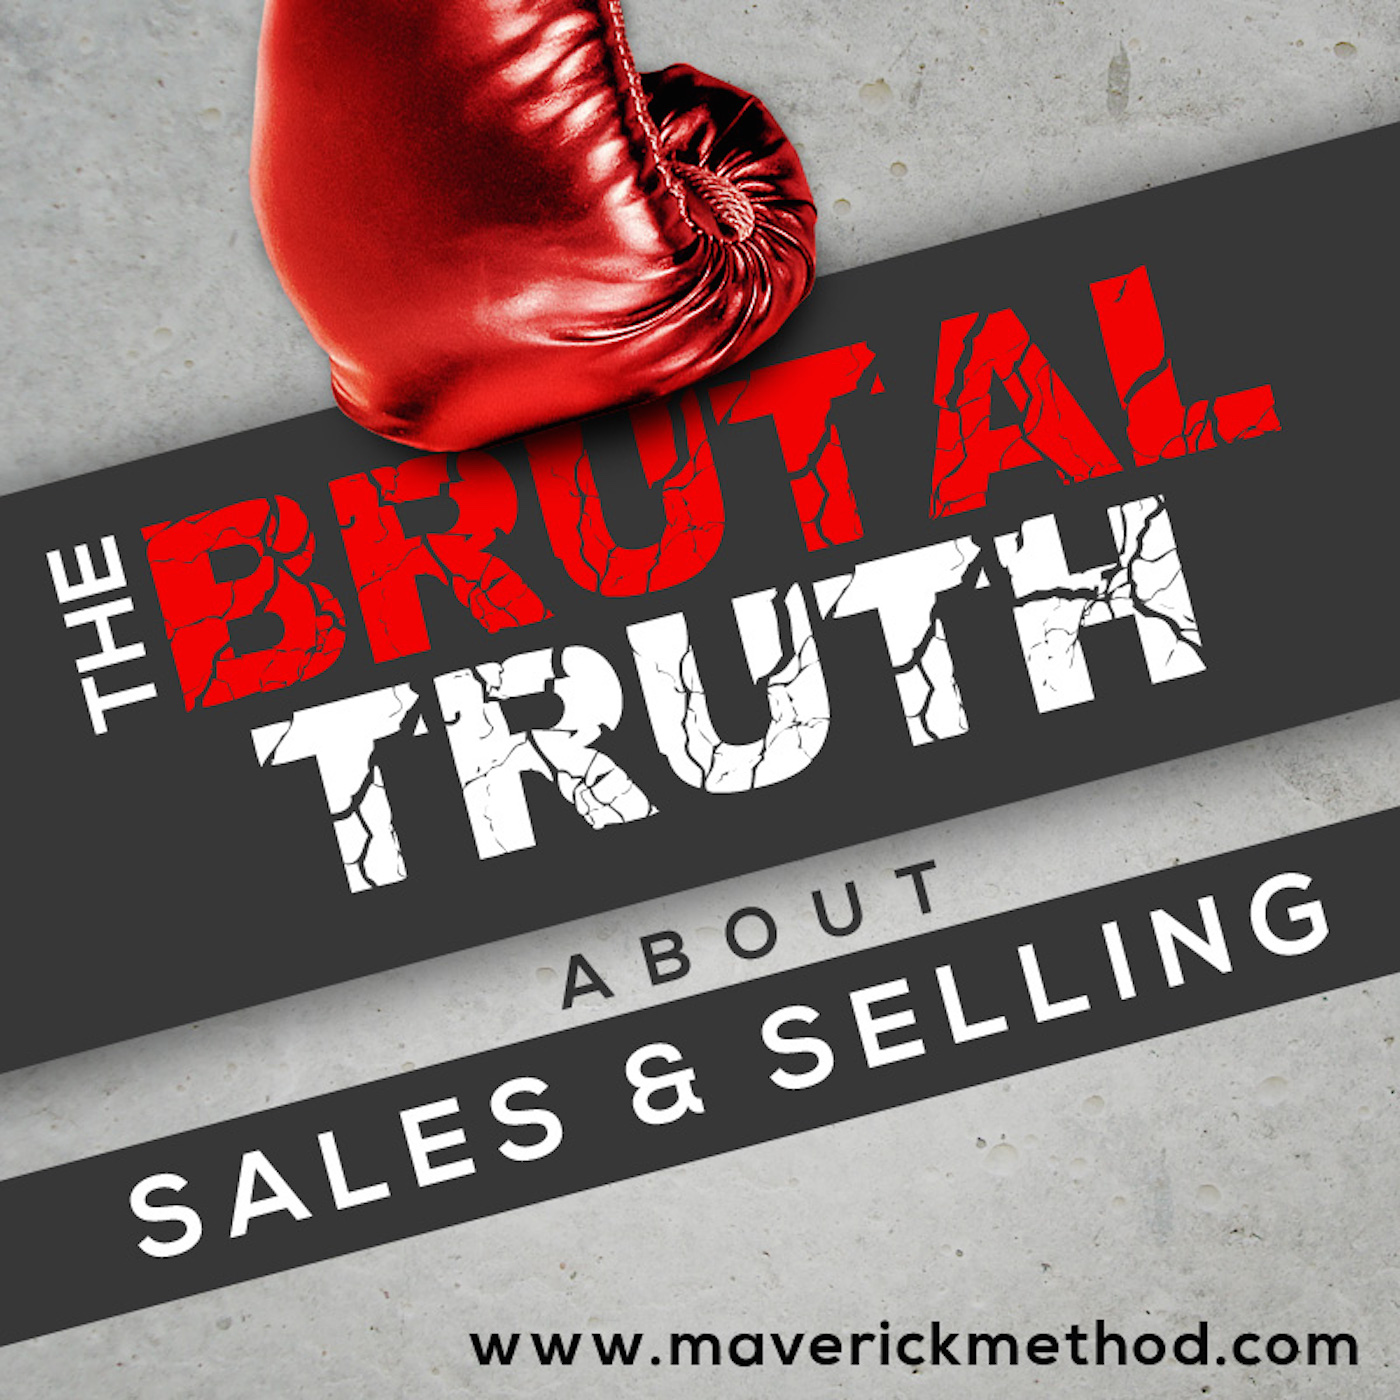 The Brutal Truth about Sales and Selling sales Podcasts